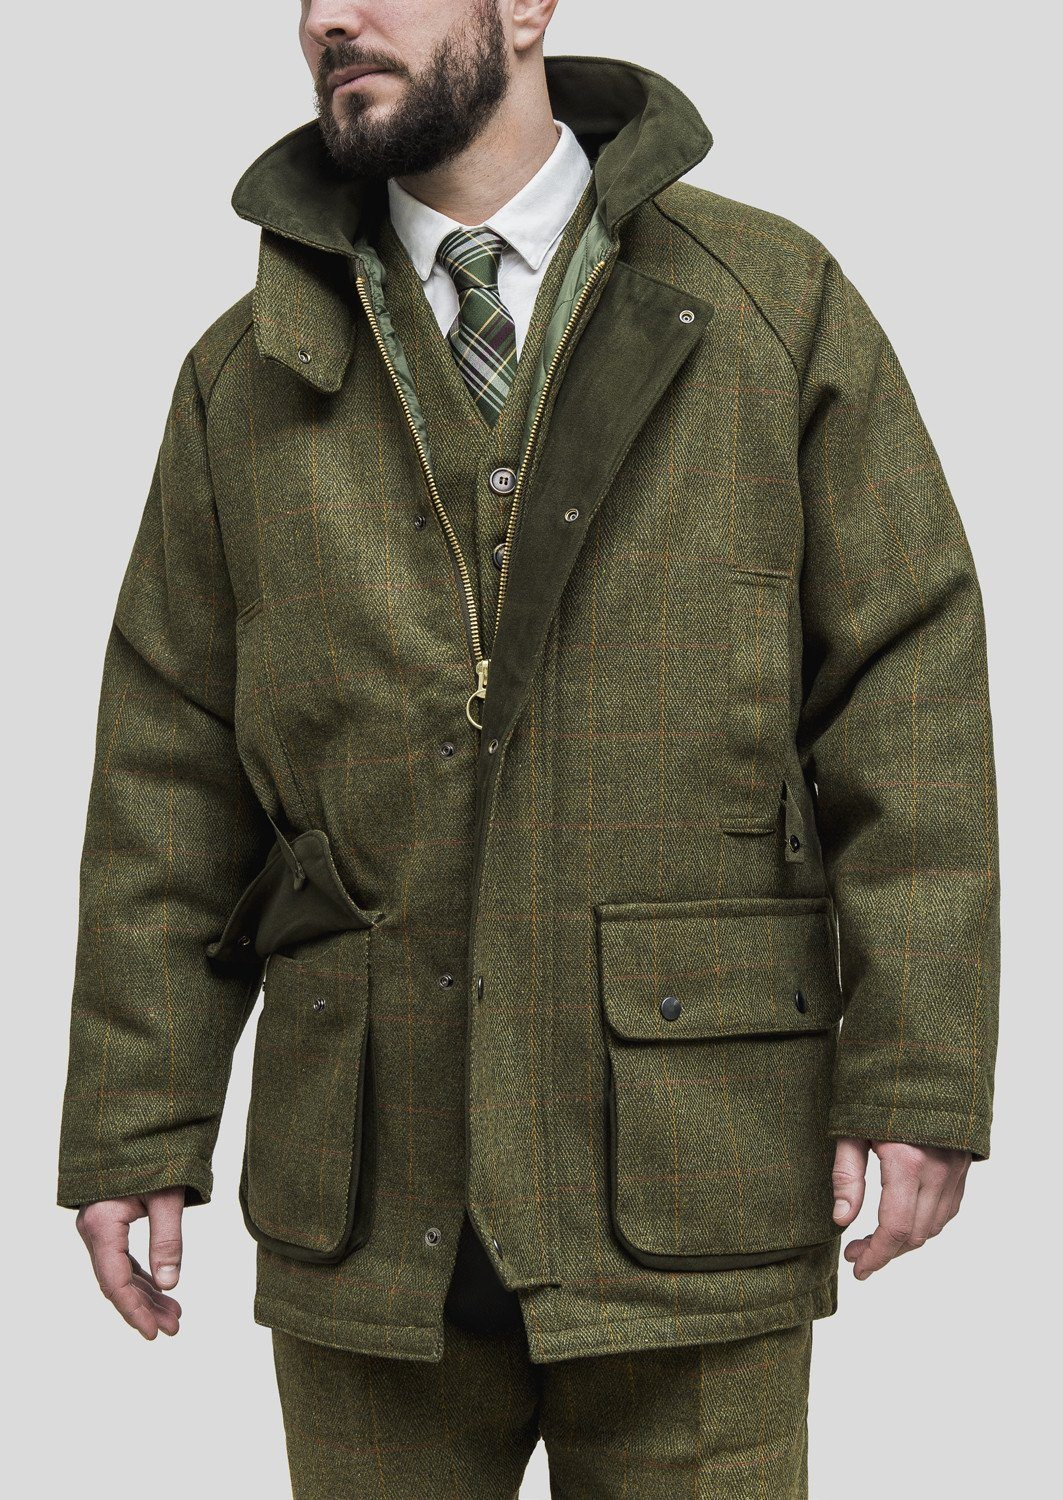 Walker & Hawkes Tweed Country Jacket mørk grøn